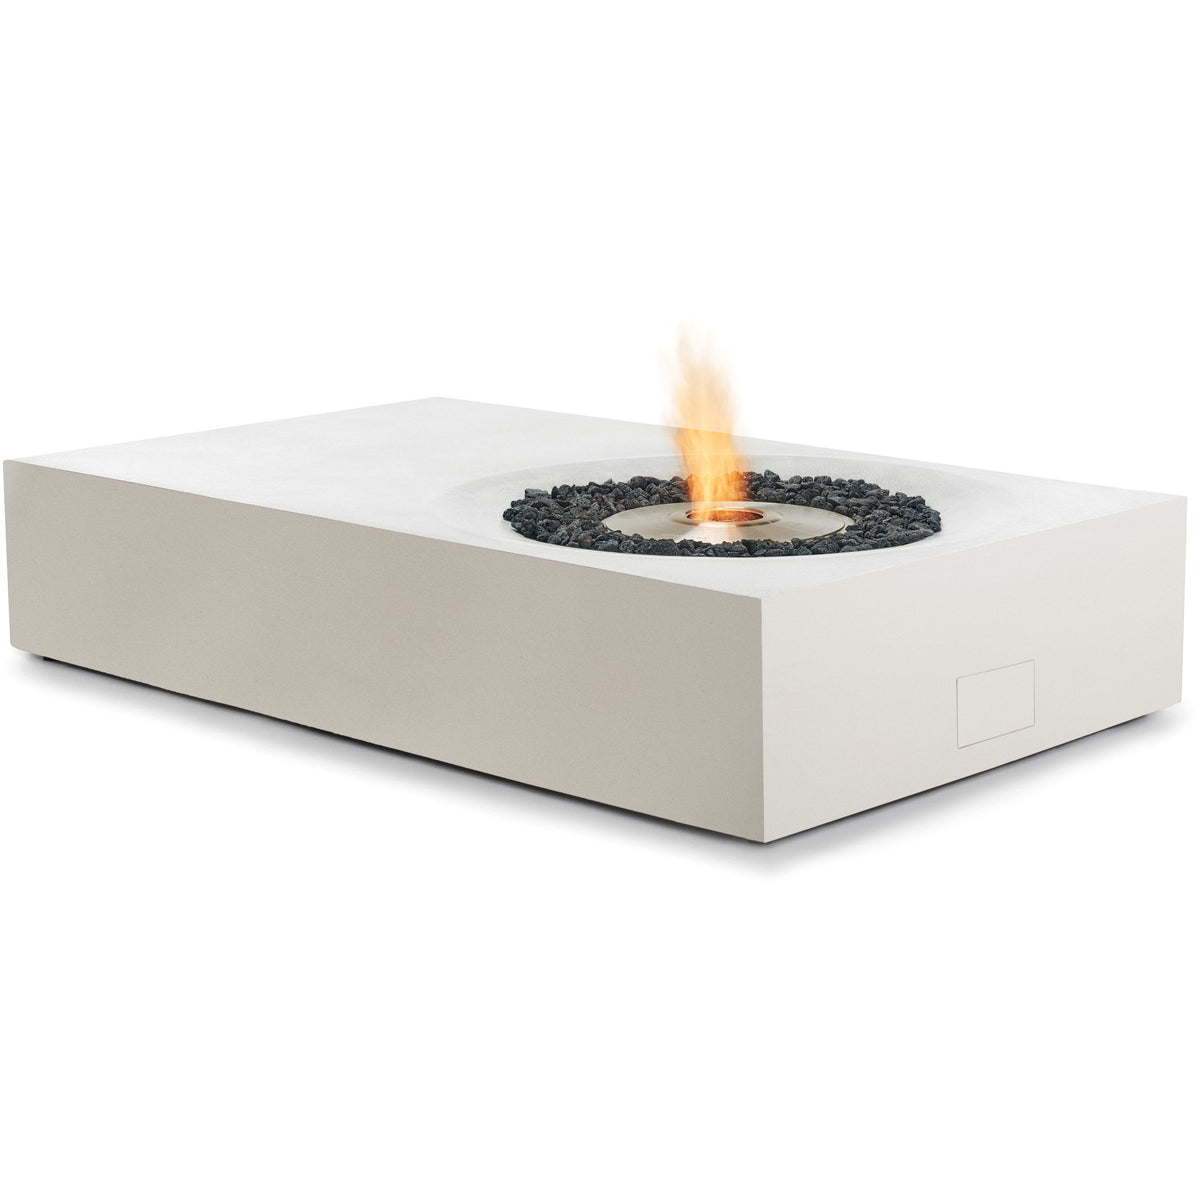 Equinox Ethanol Fire Table - Outdoor Living Essentials